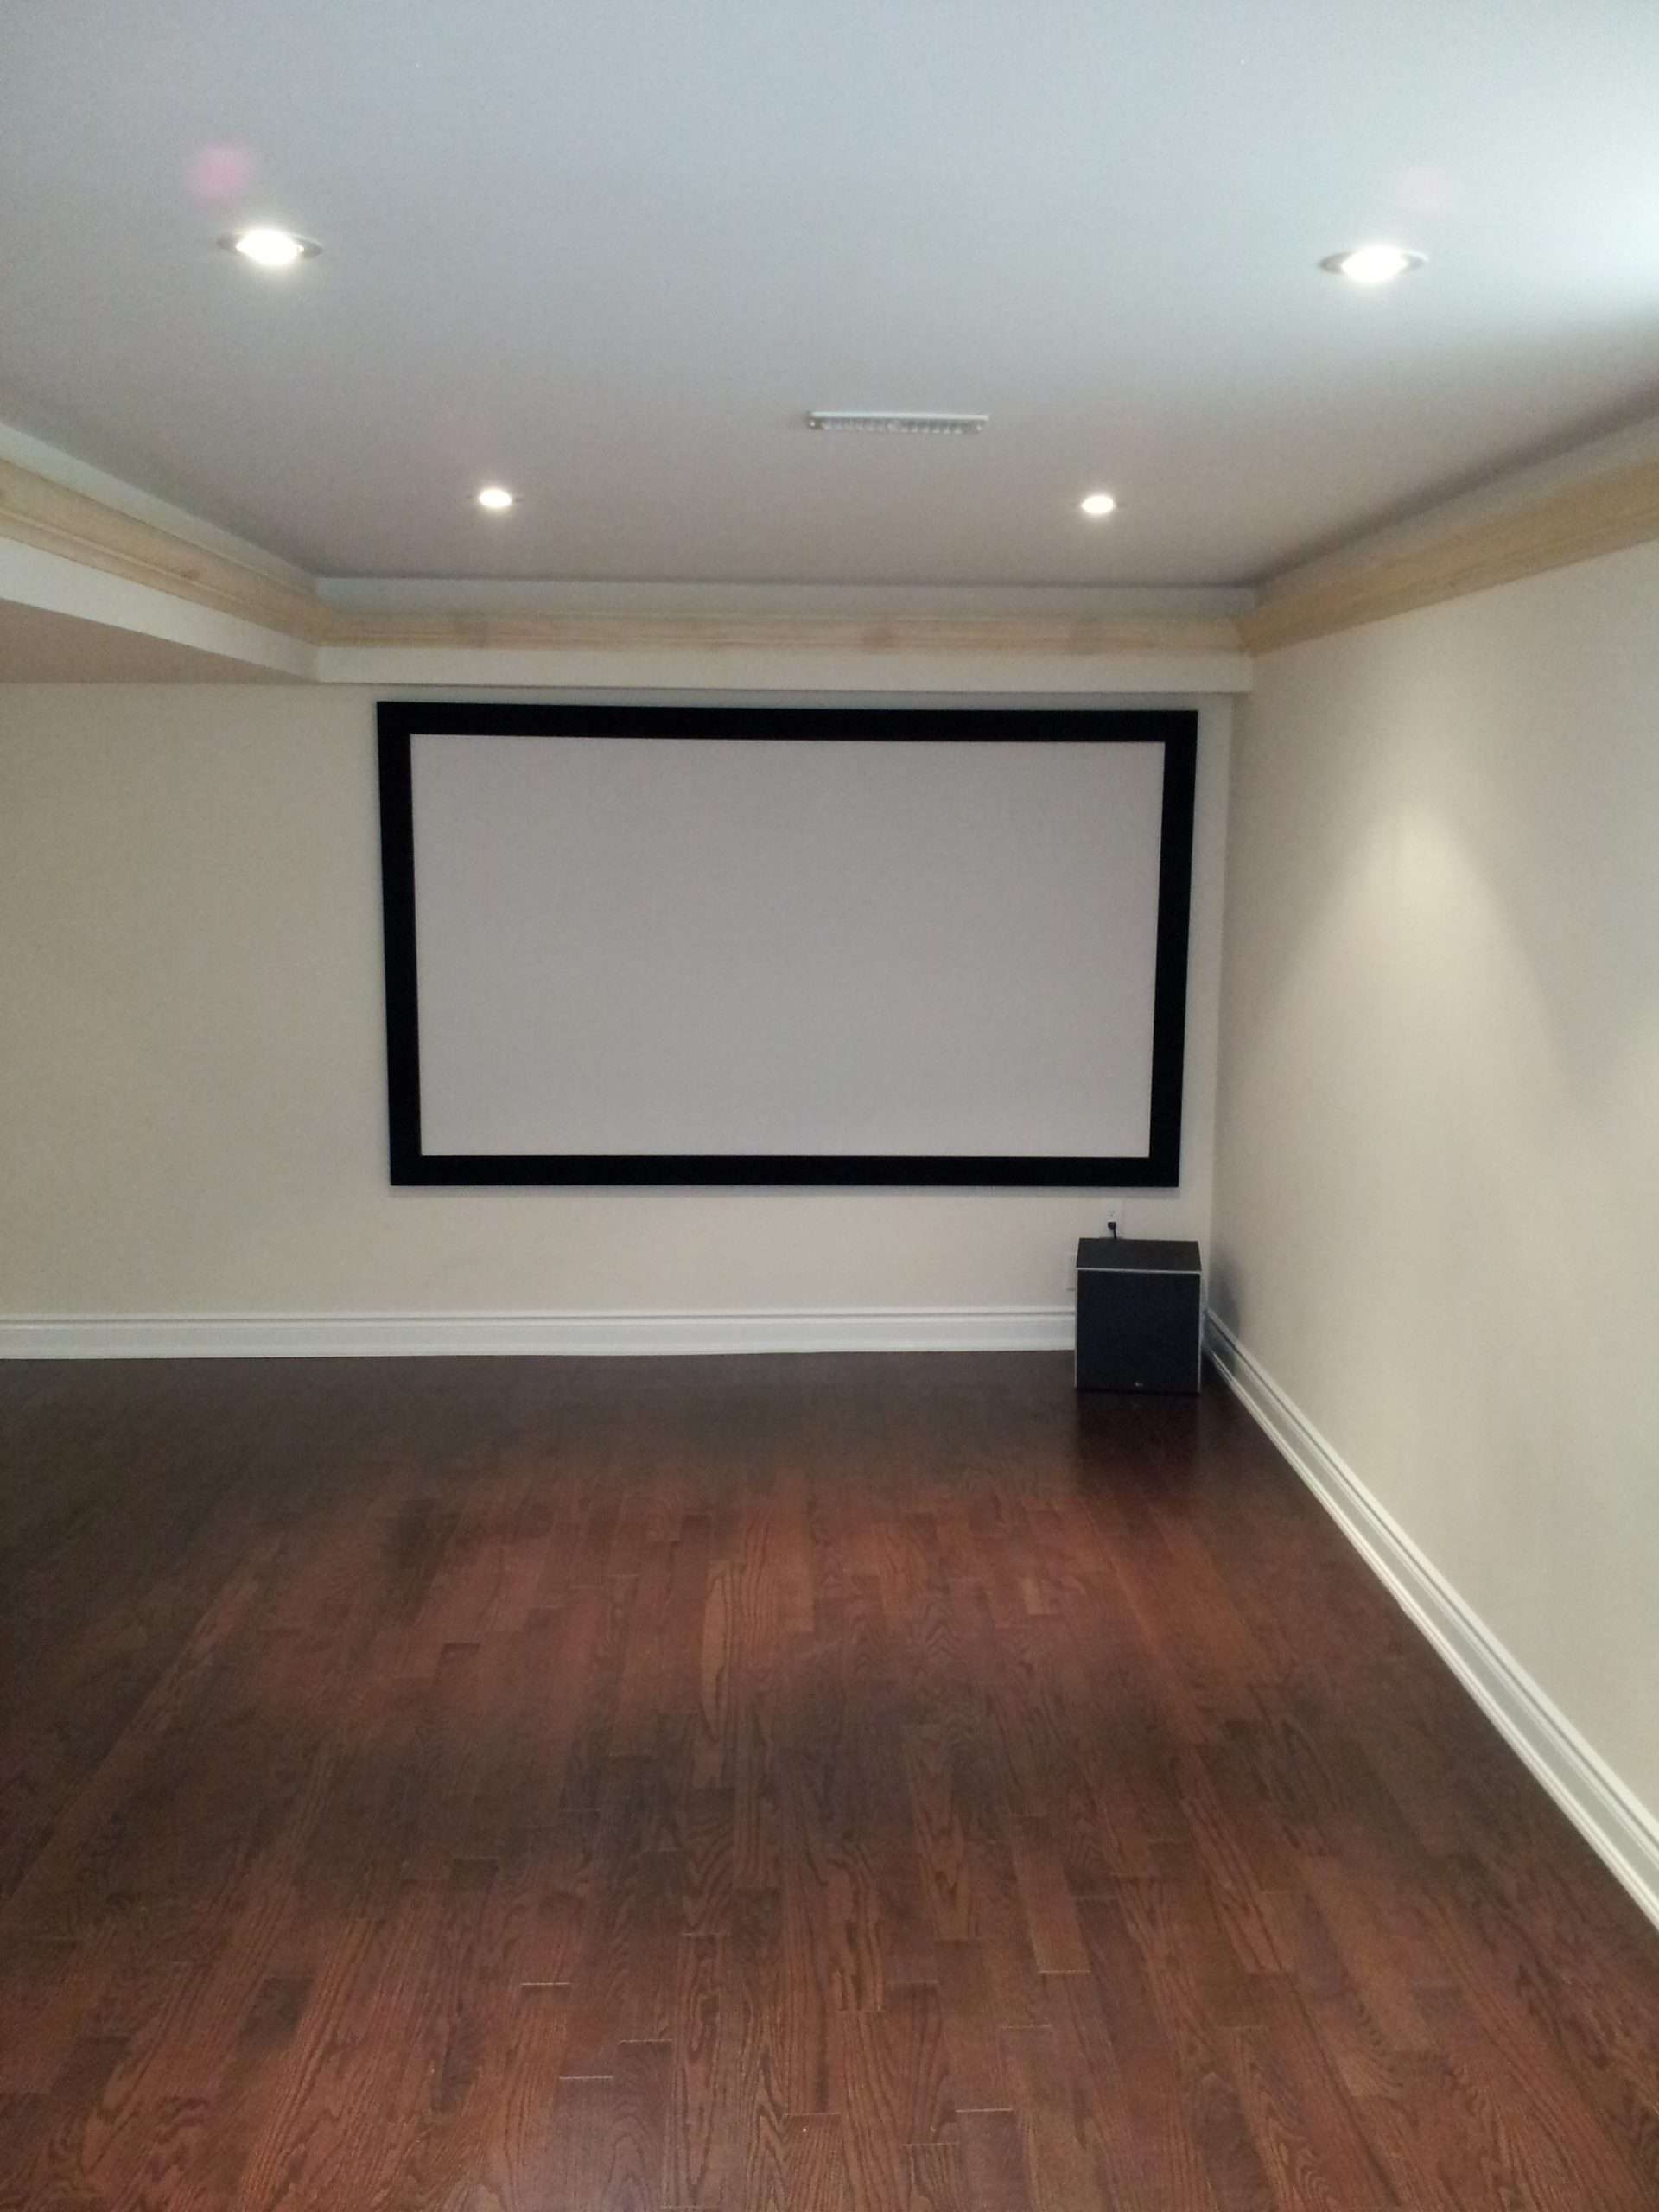 On Wall Projection Screen